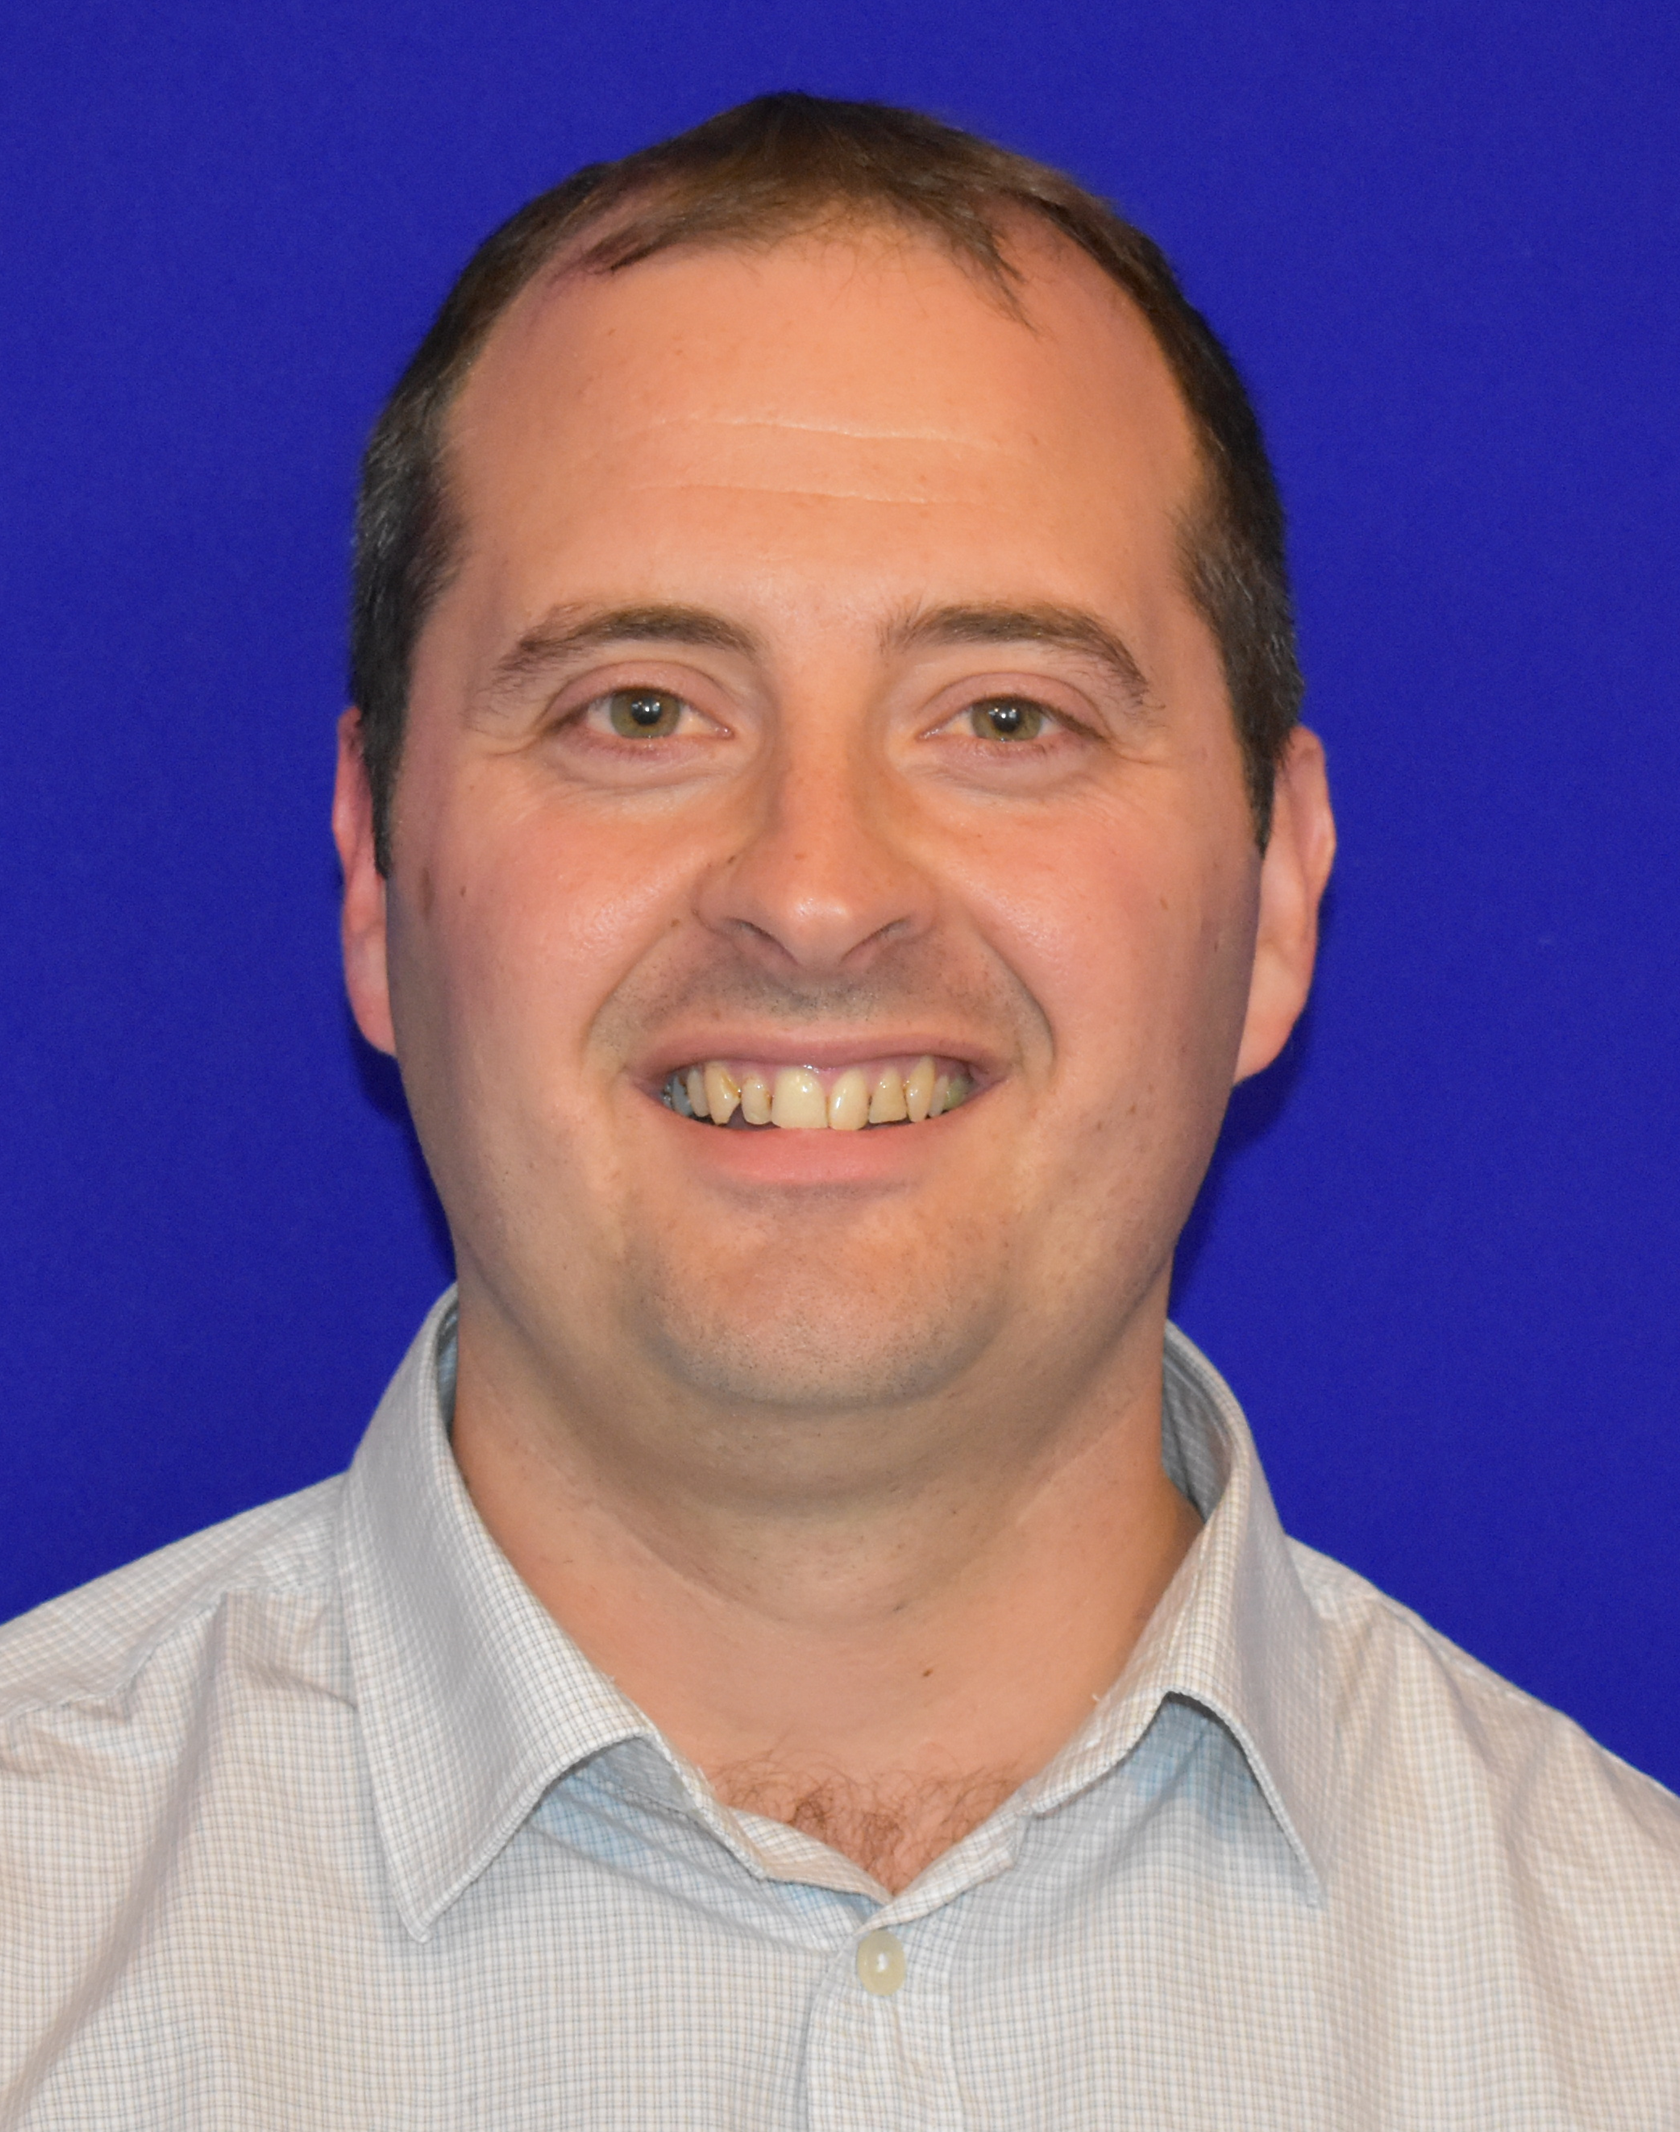 Photograph of Mark Smith, Director of HR & Organisational Development